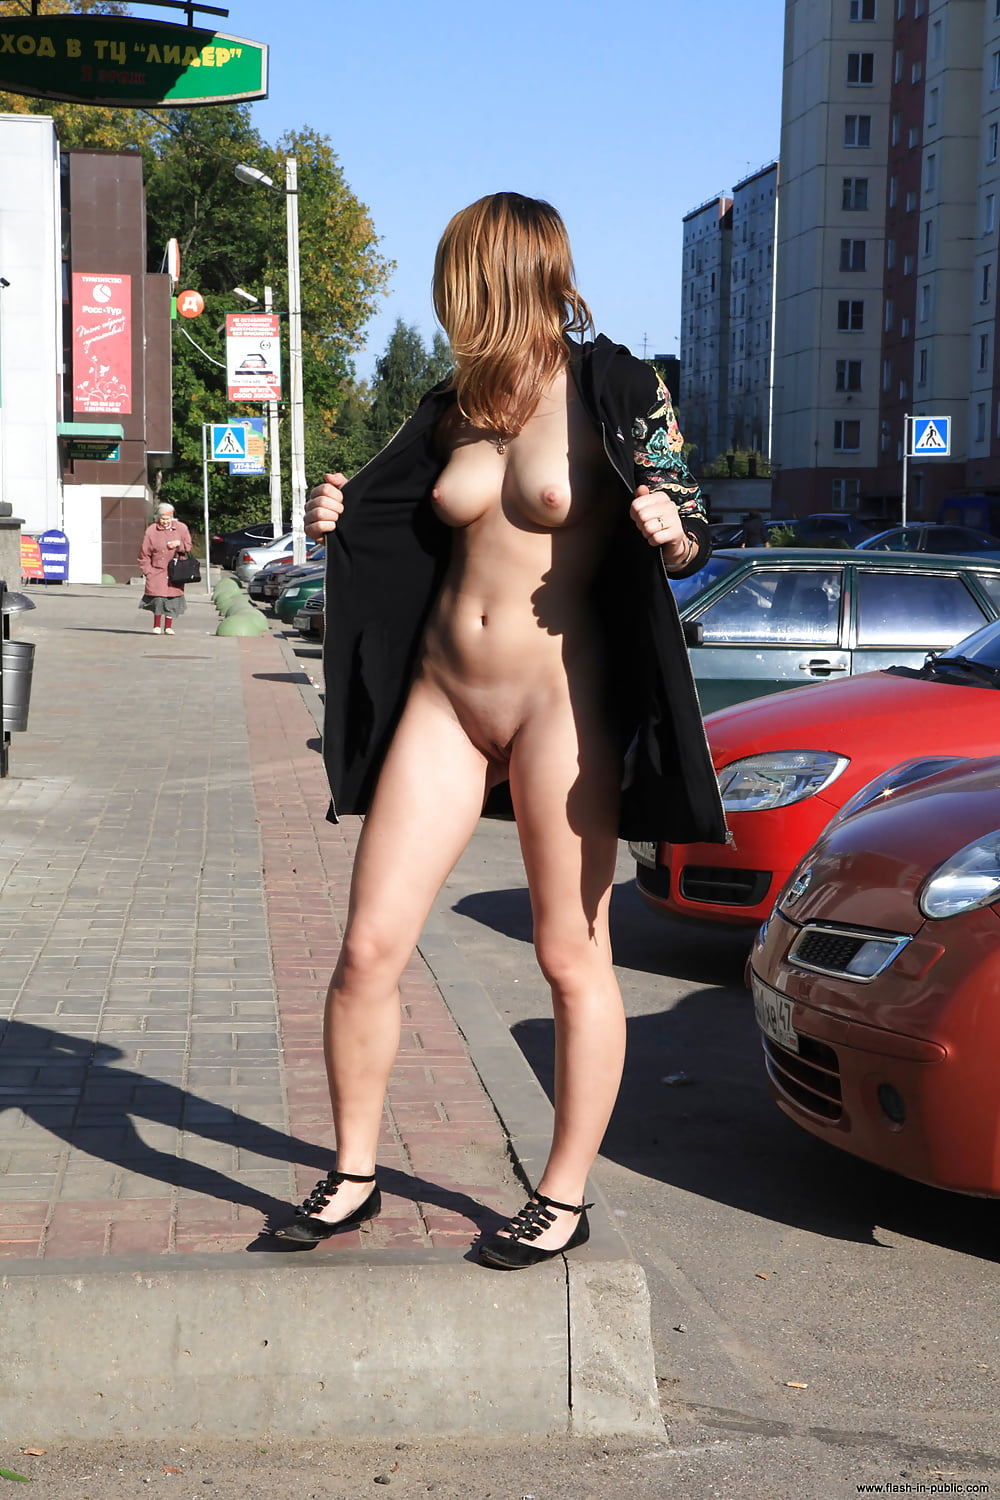 Very hot young brunette chick flashing her pretty pussy on a busy street